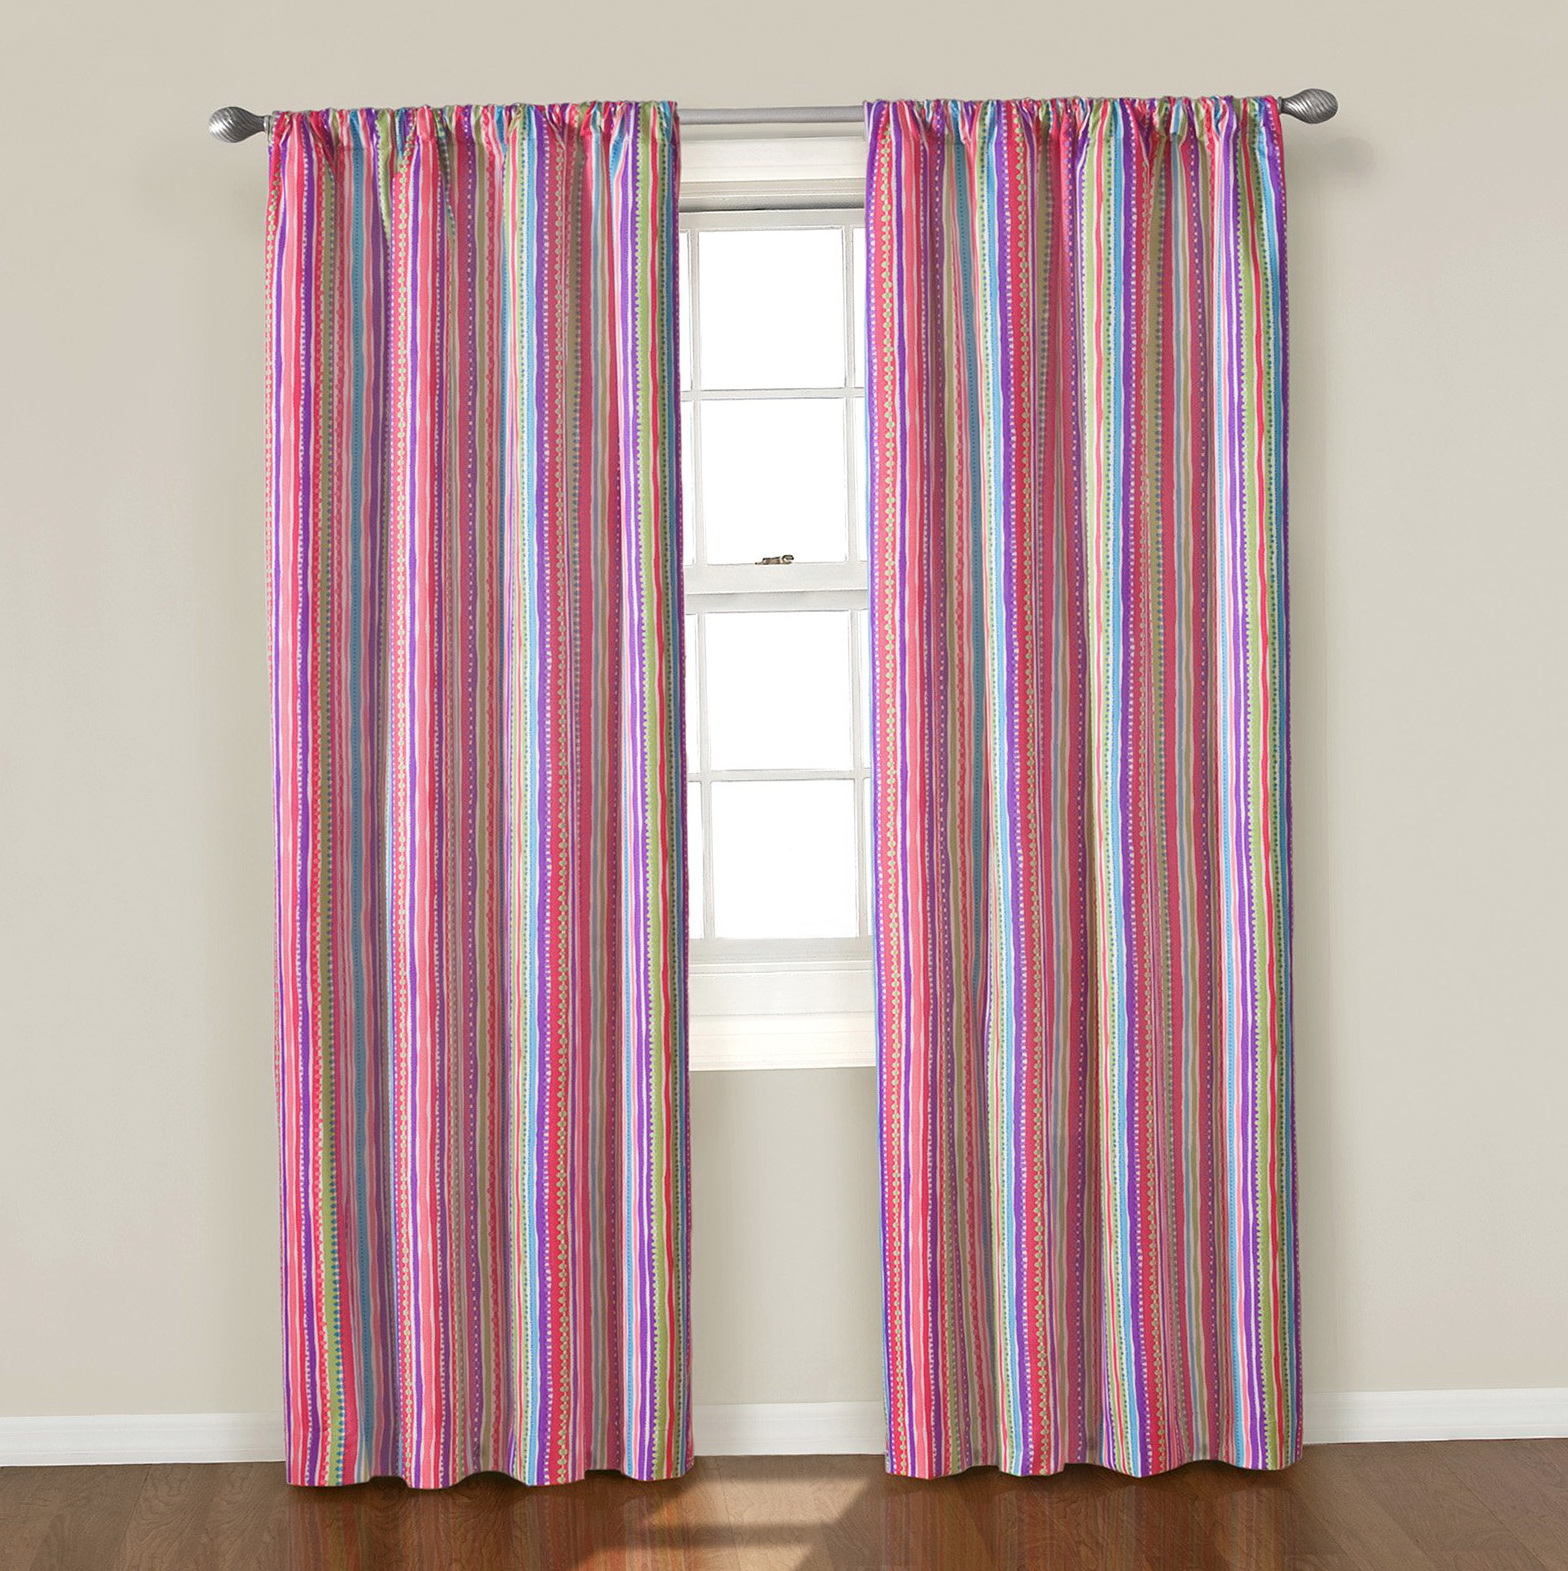 Energy Efficient Curtains Bed Bath And Beyond